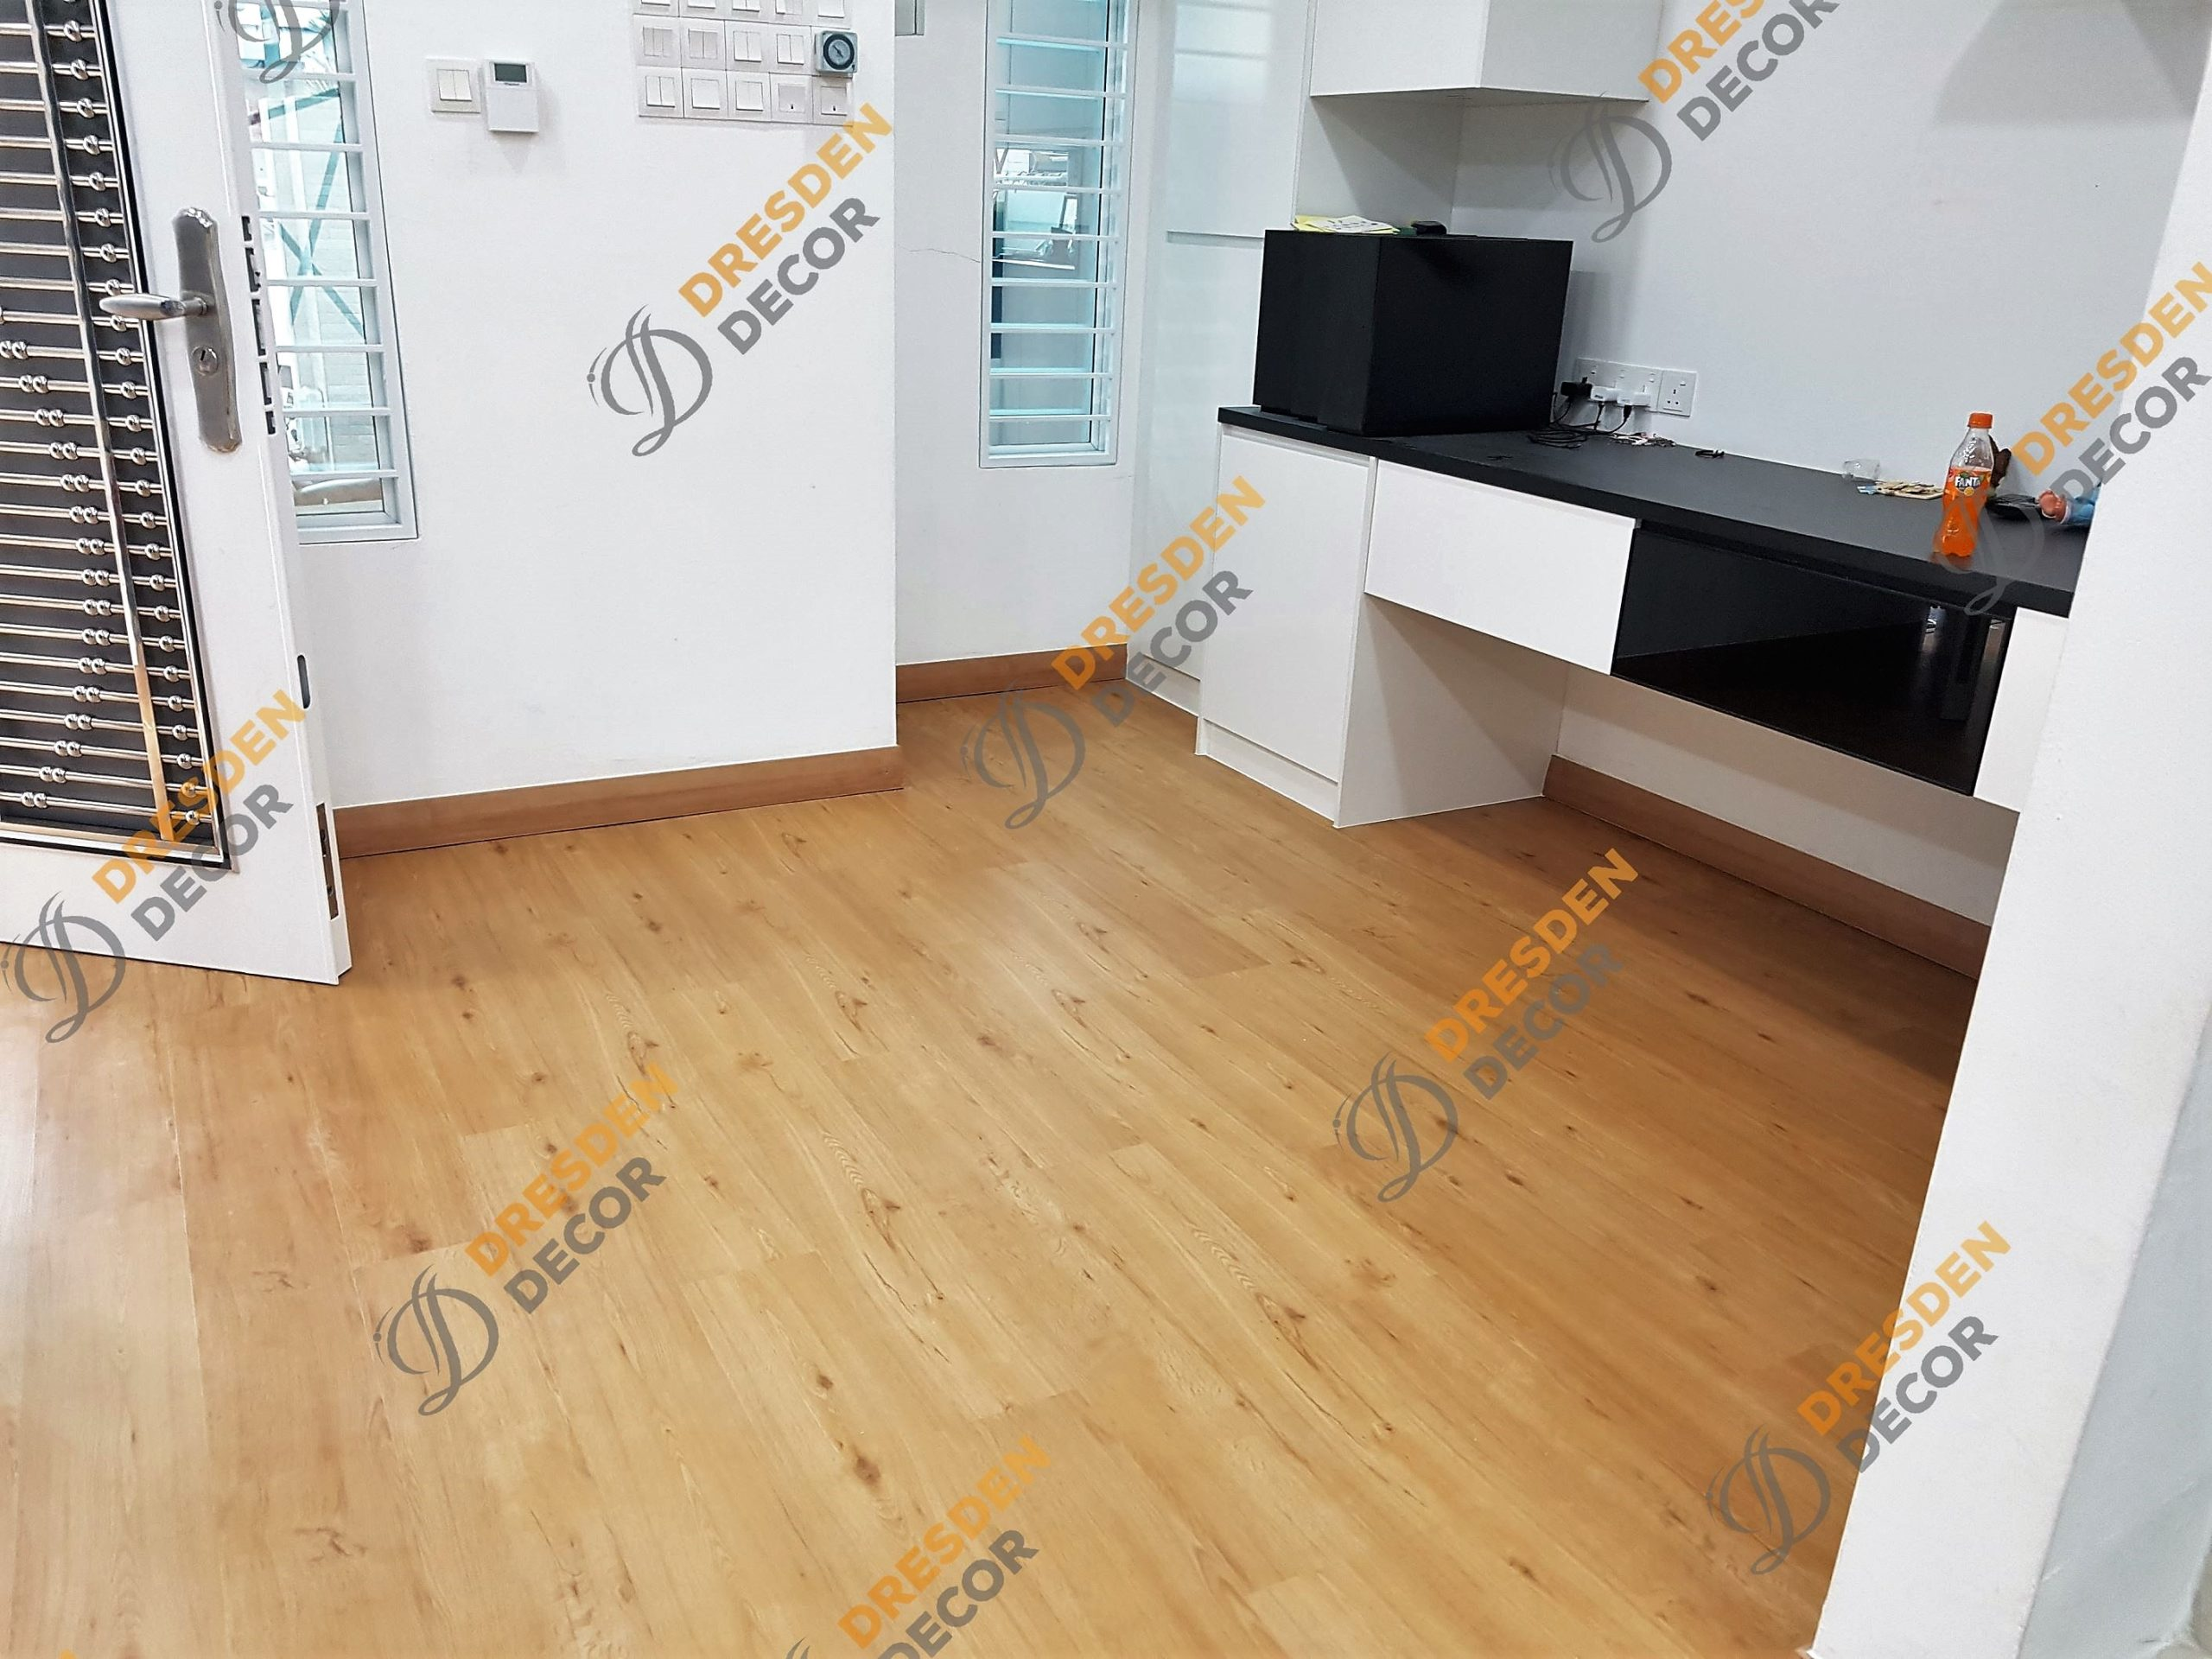 Residential Living Hall-4.0mm SPC